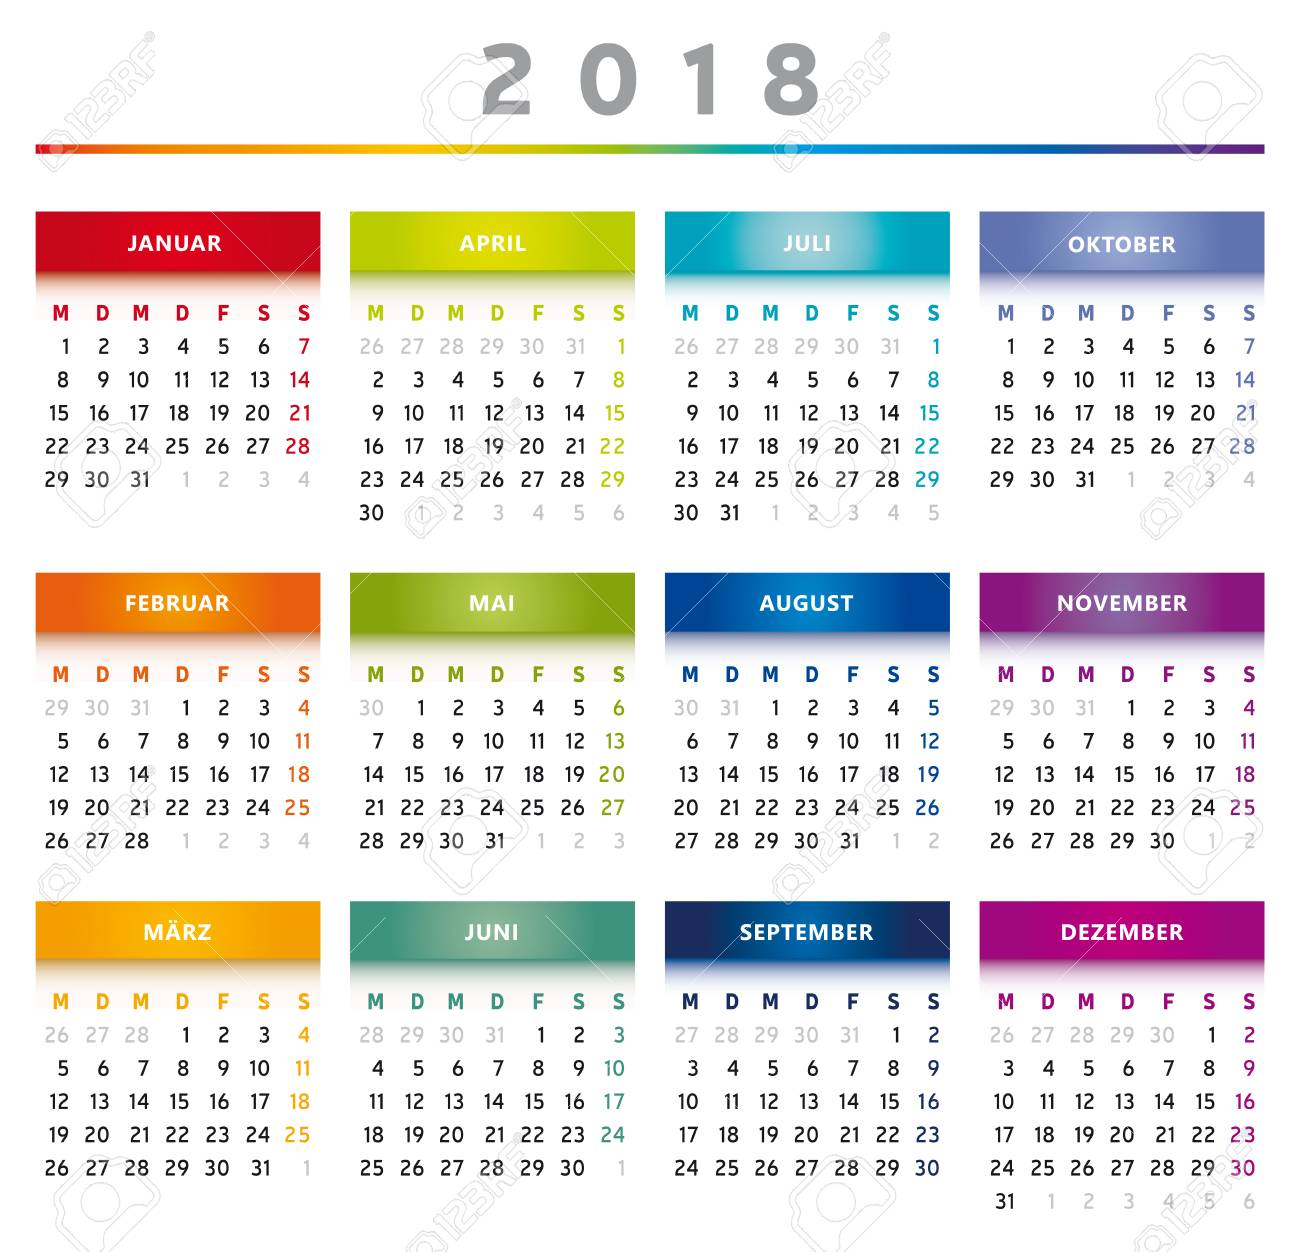 2018 calendar rainbow colors in german stock vector 87770719